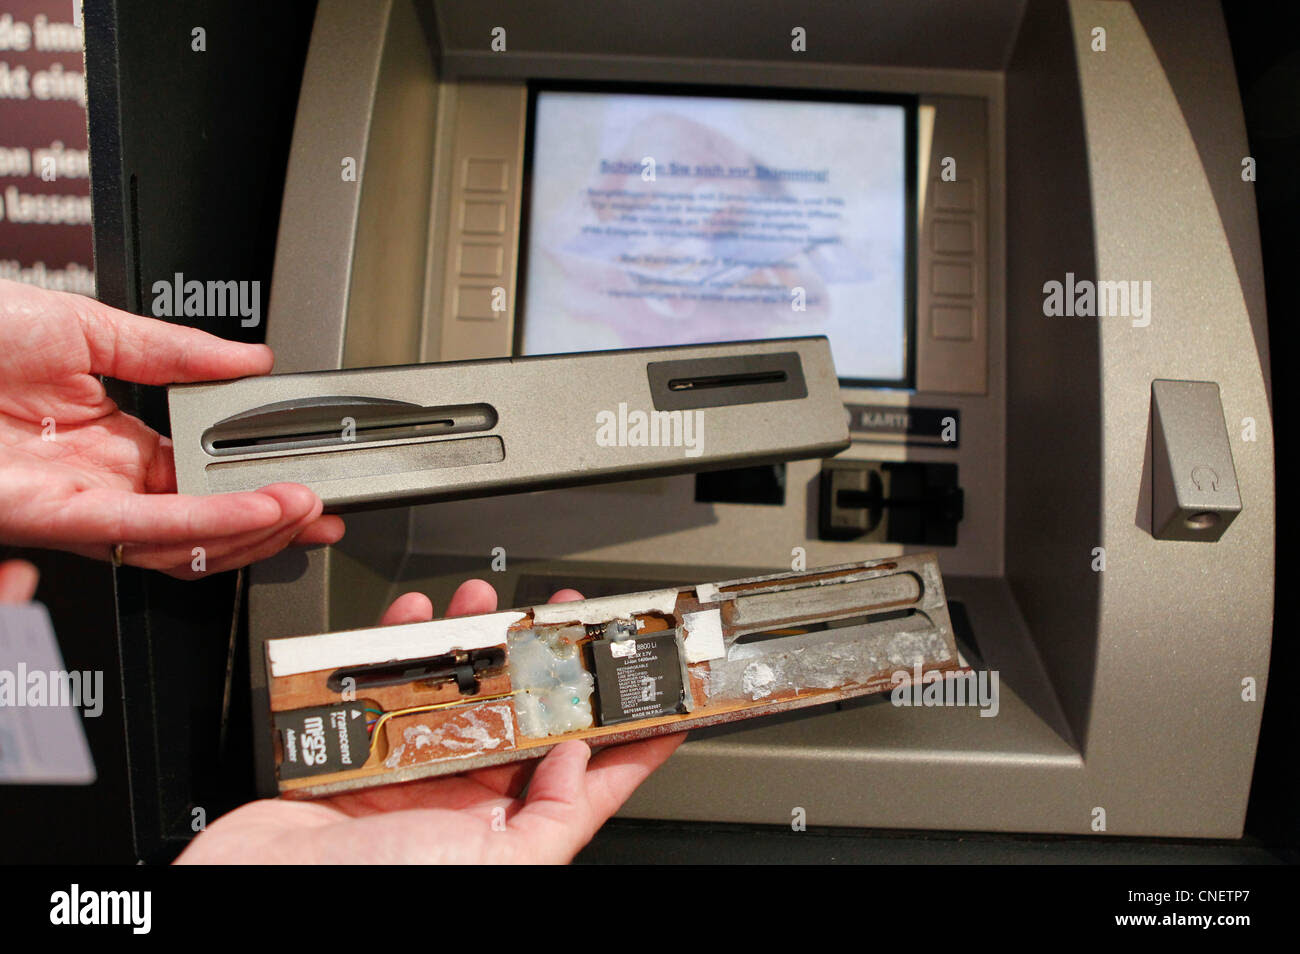 Skimming Credit Card Fraud, theft of Bank and Credit Card Stock Photo, Royalty Free Image ...